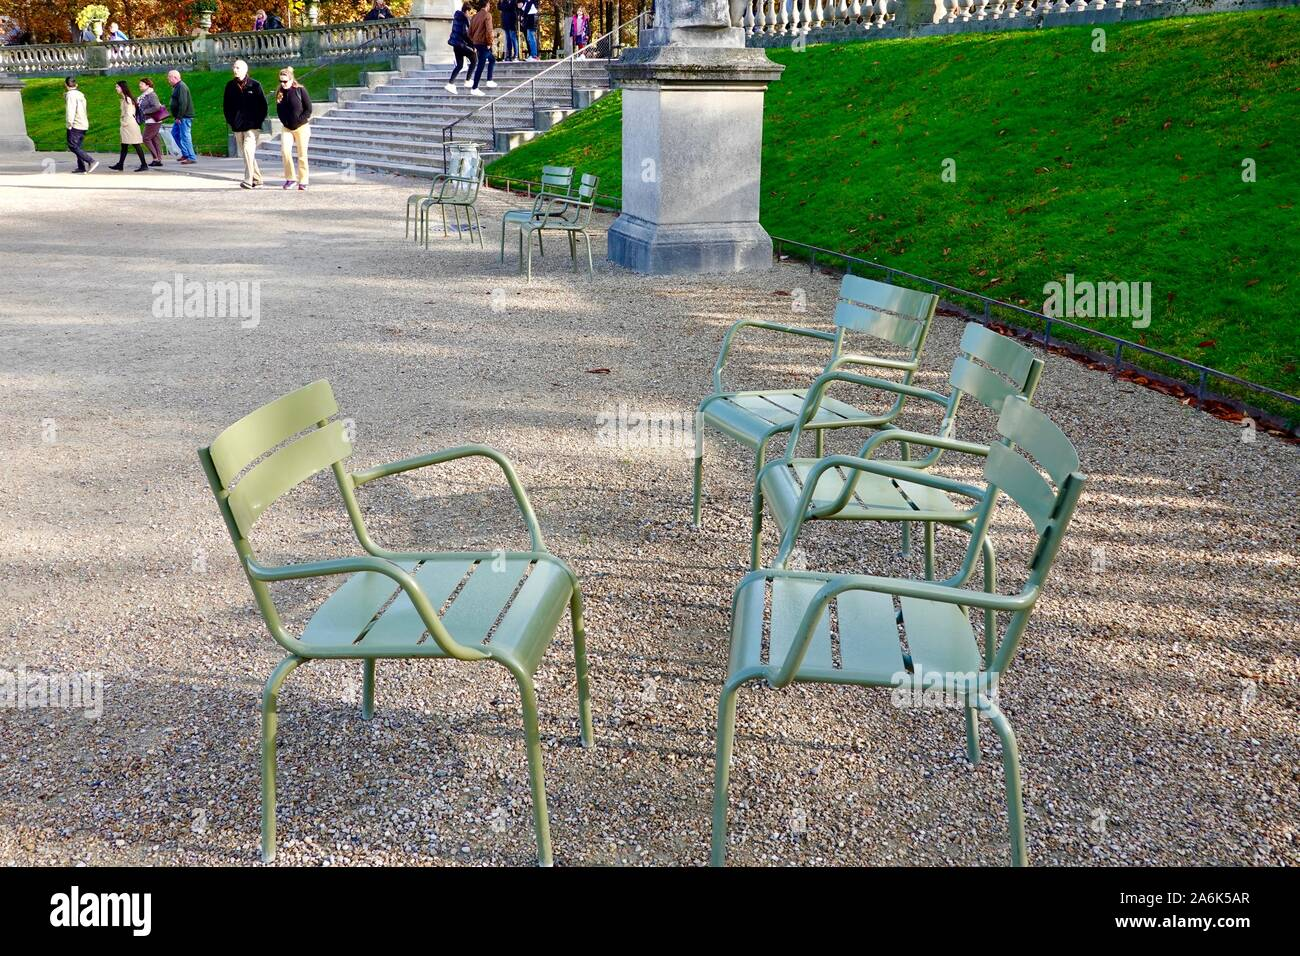 Green chair stock photos and images. https www alamy com green chairs in the iconic luxembourg gardens autumn october in paris france image331106239 html